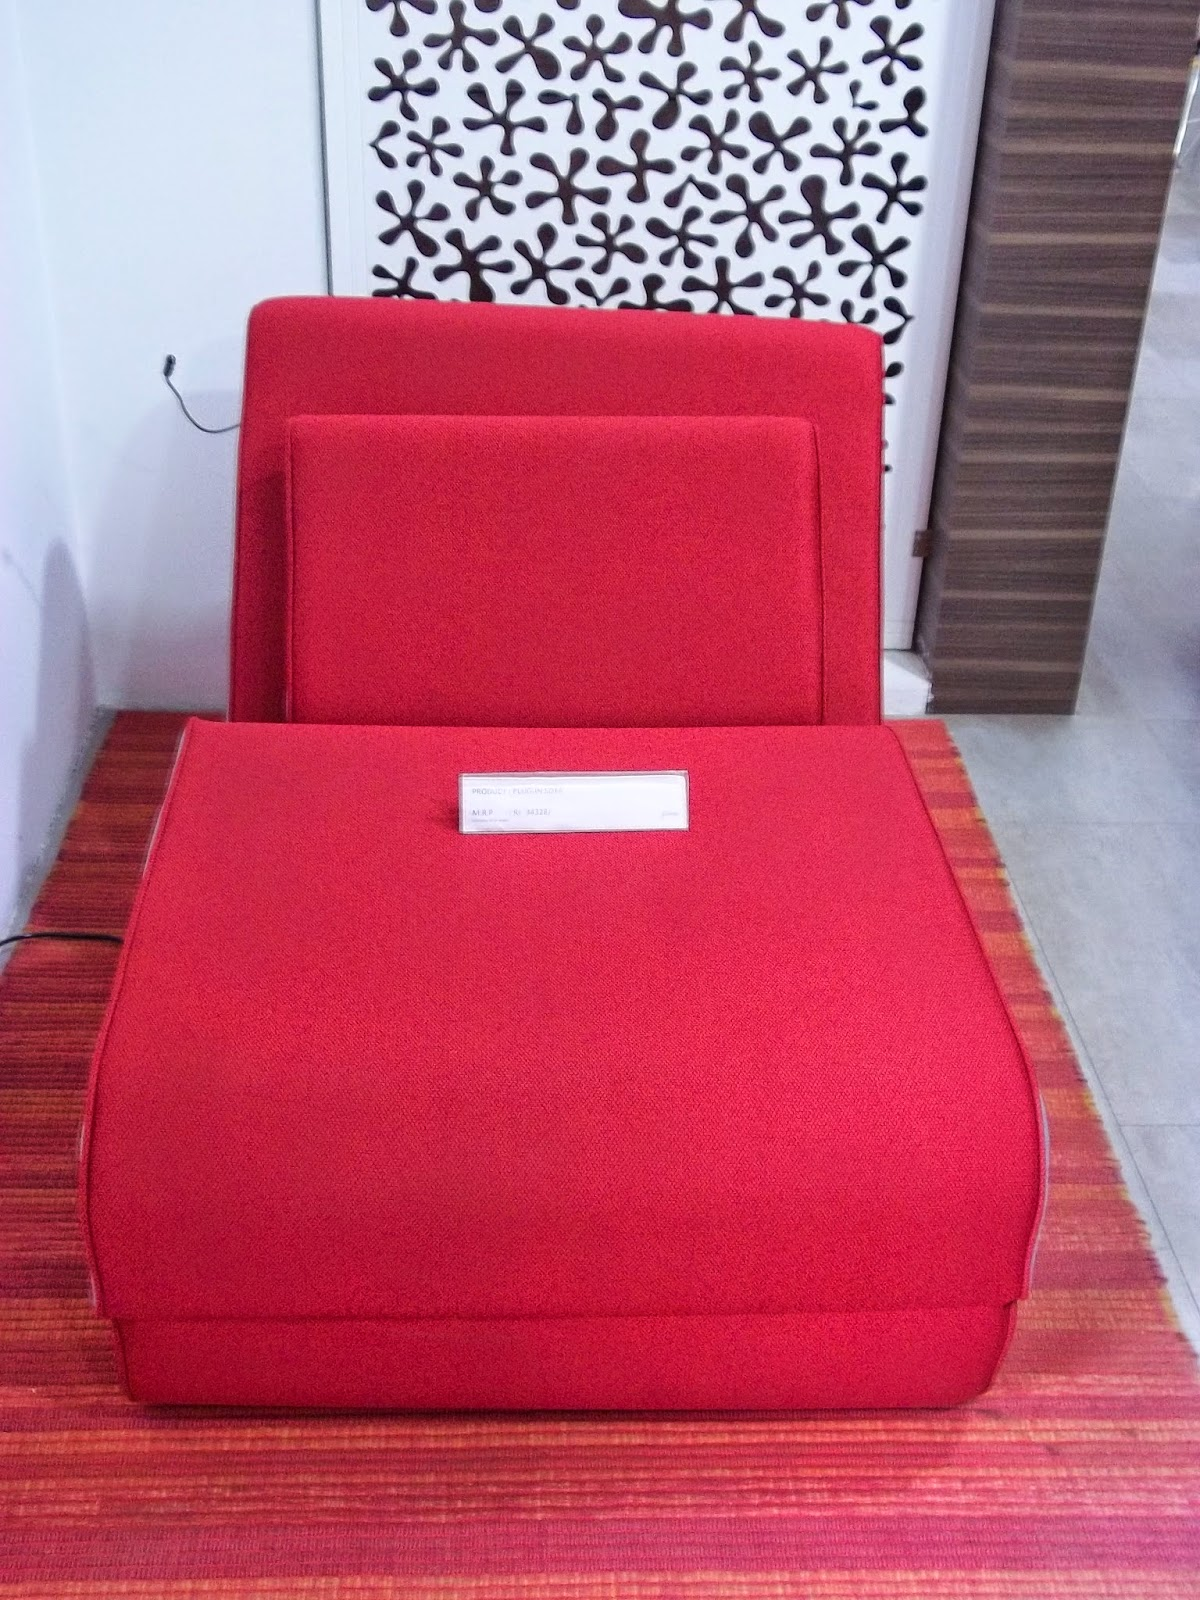 godrej chair accessories the best high spirit of mumbai dream home with interio